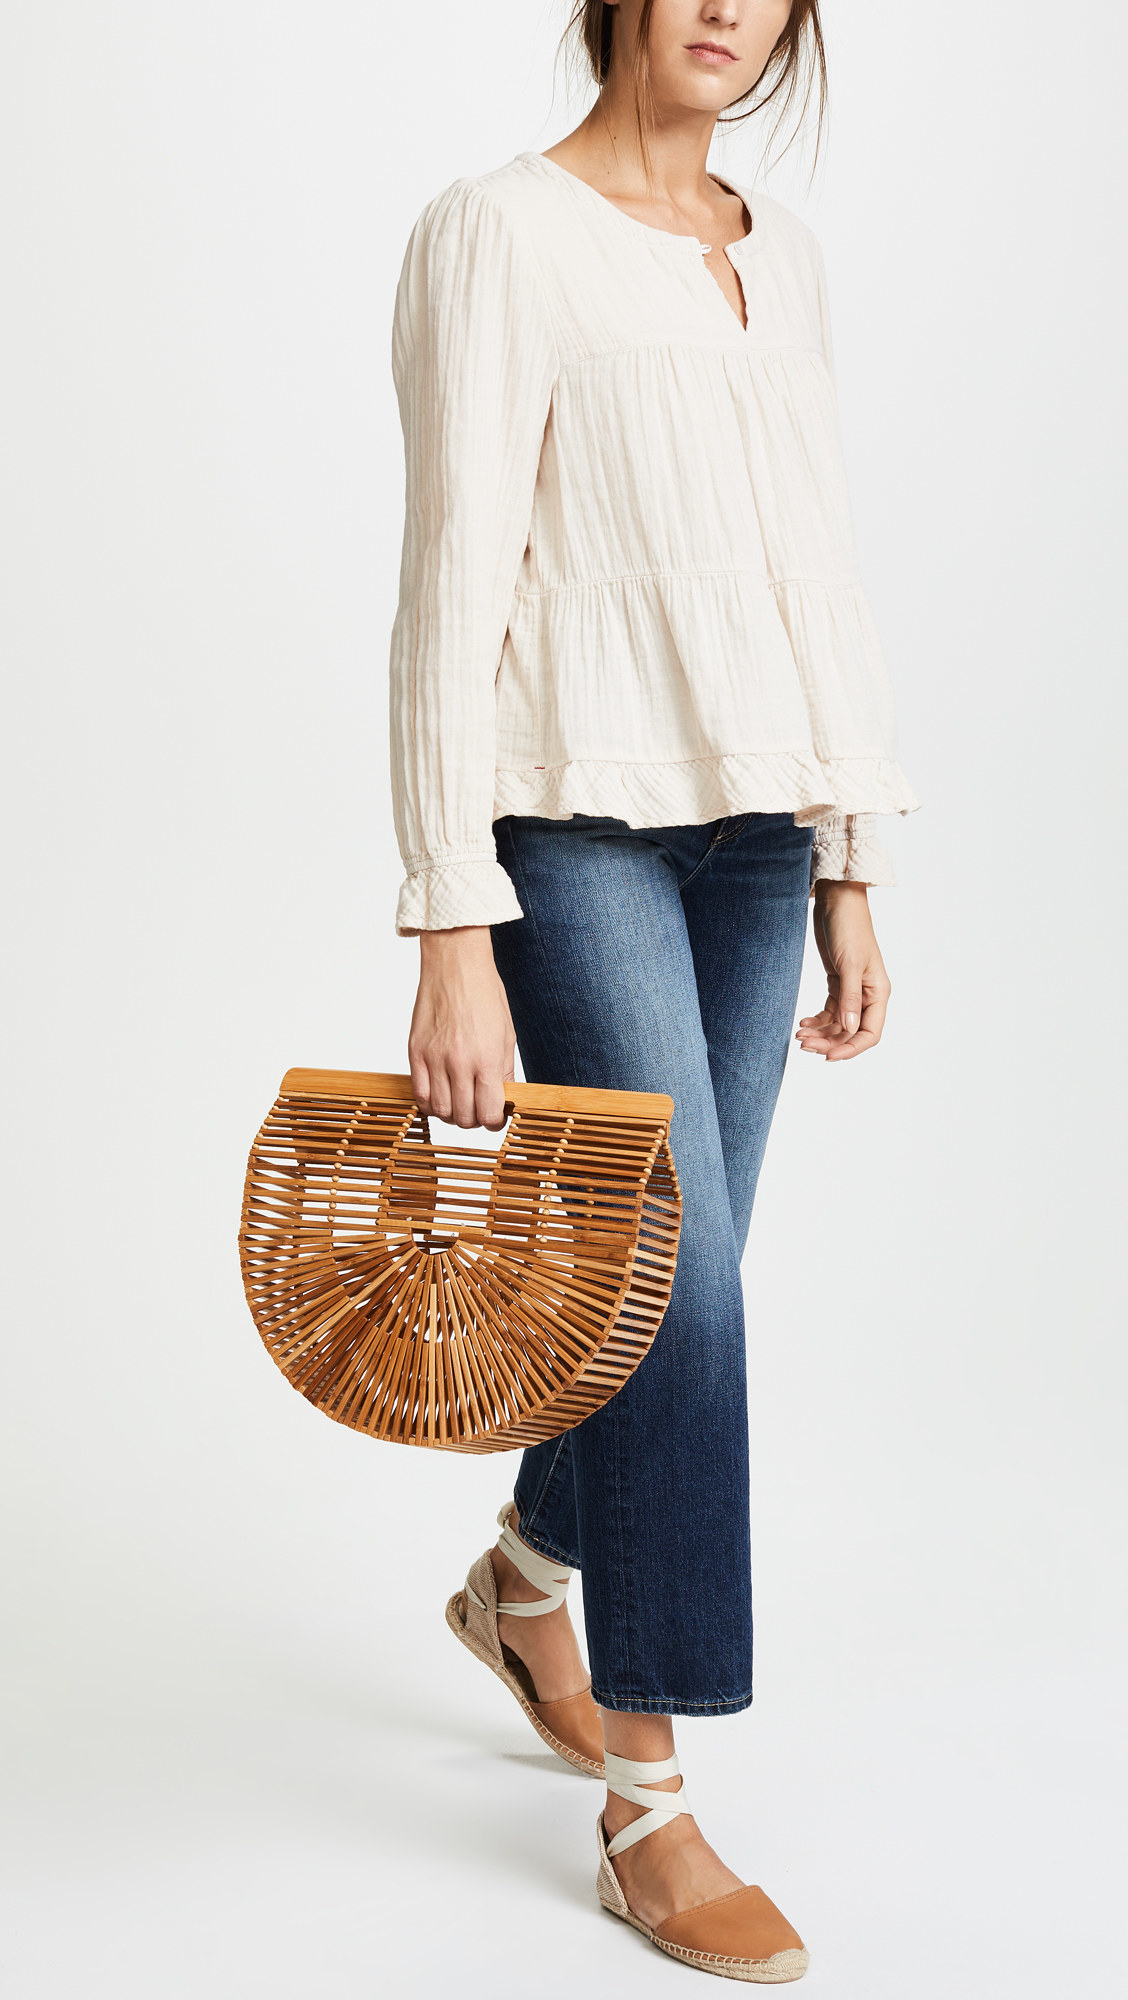 Model holding the curved wood clutch, which is about width of a watermelon